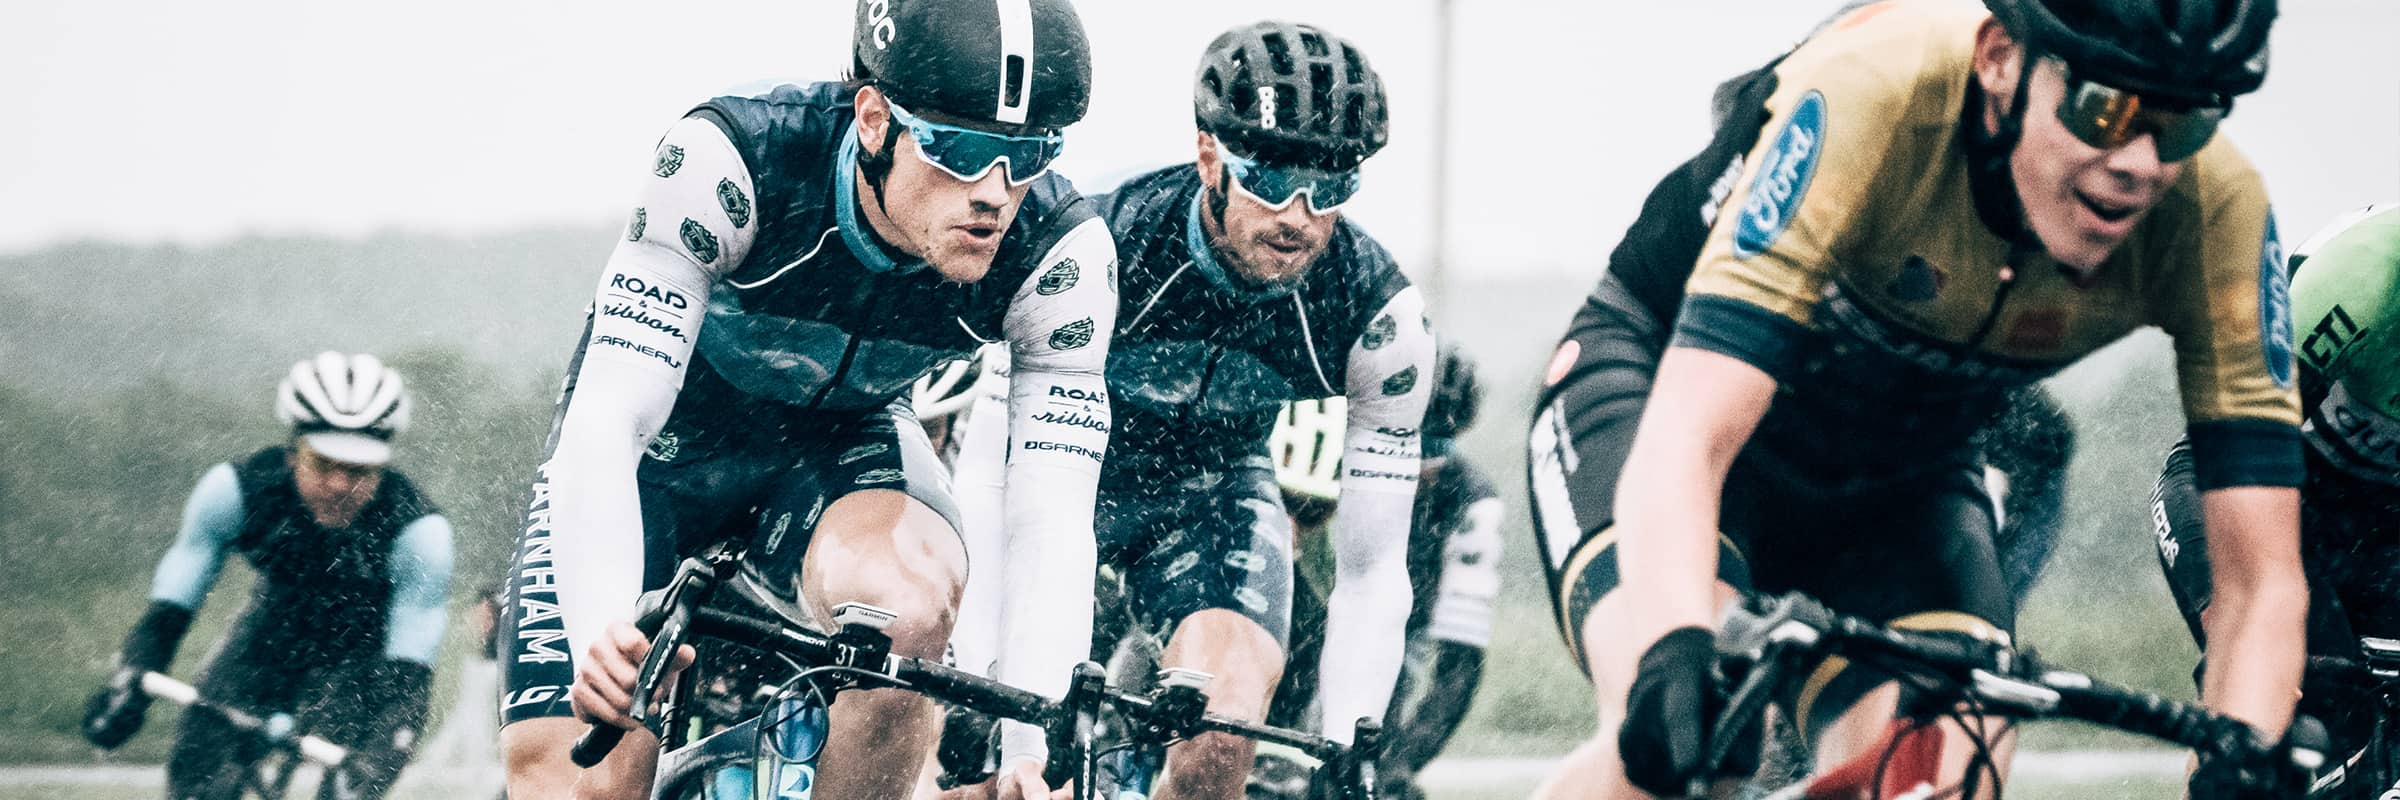 . Garneau: a Core Cycling Brand